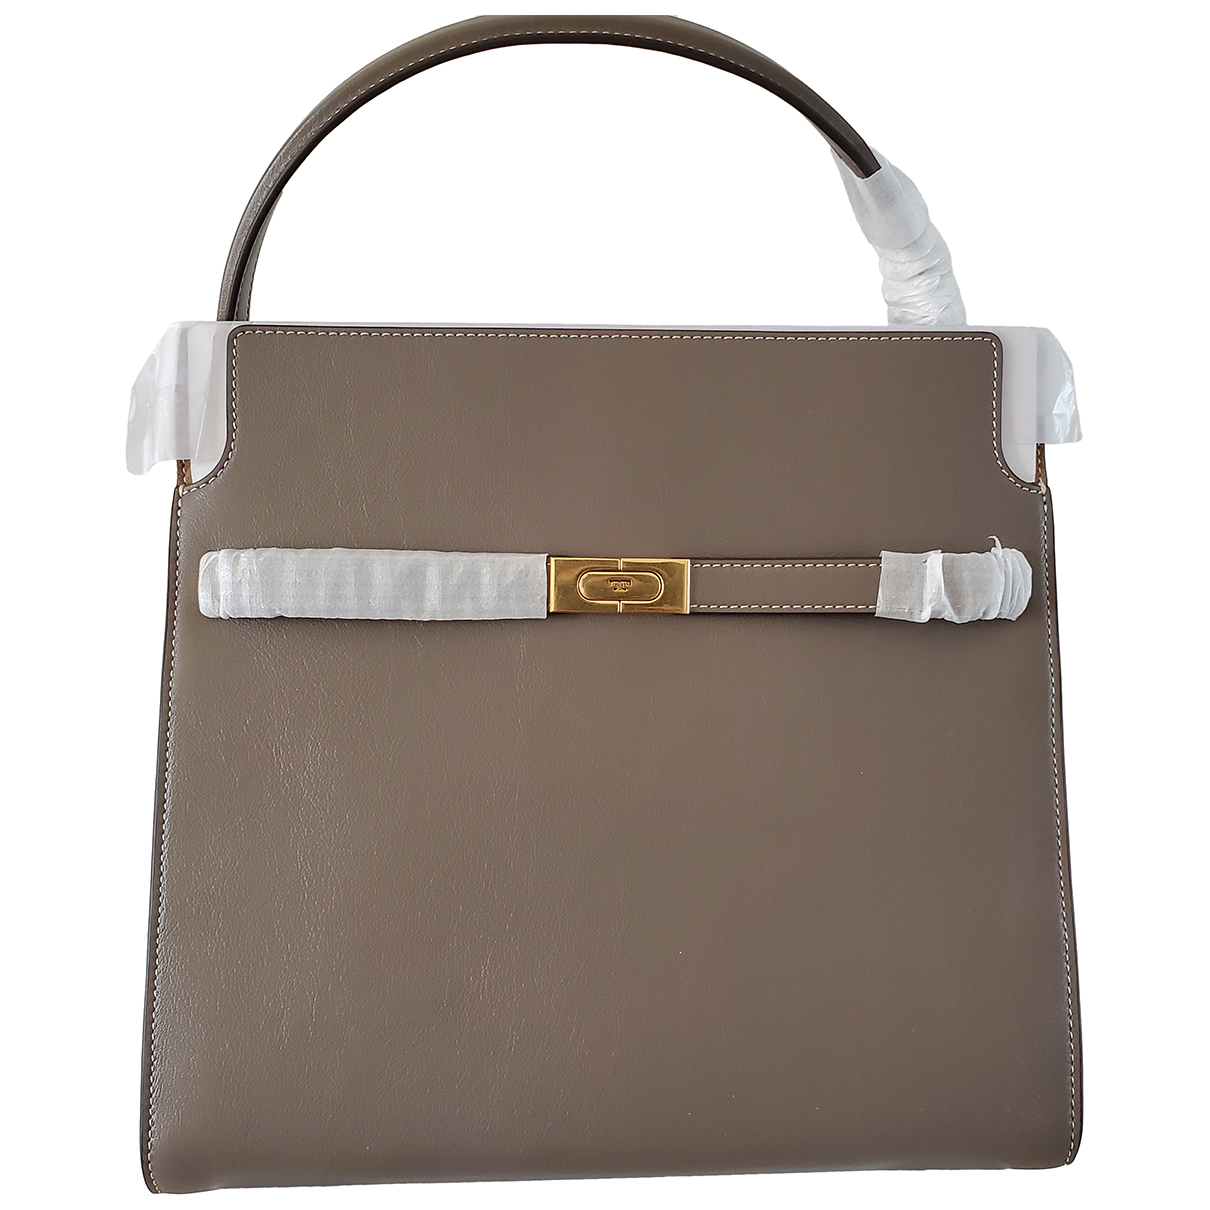 Tory Burch N Grey Leather handbag for Women N